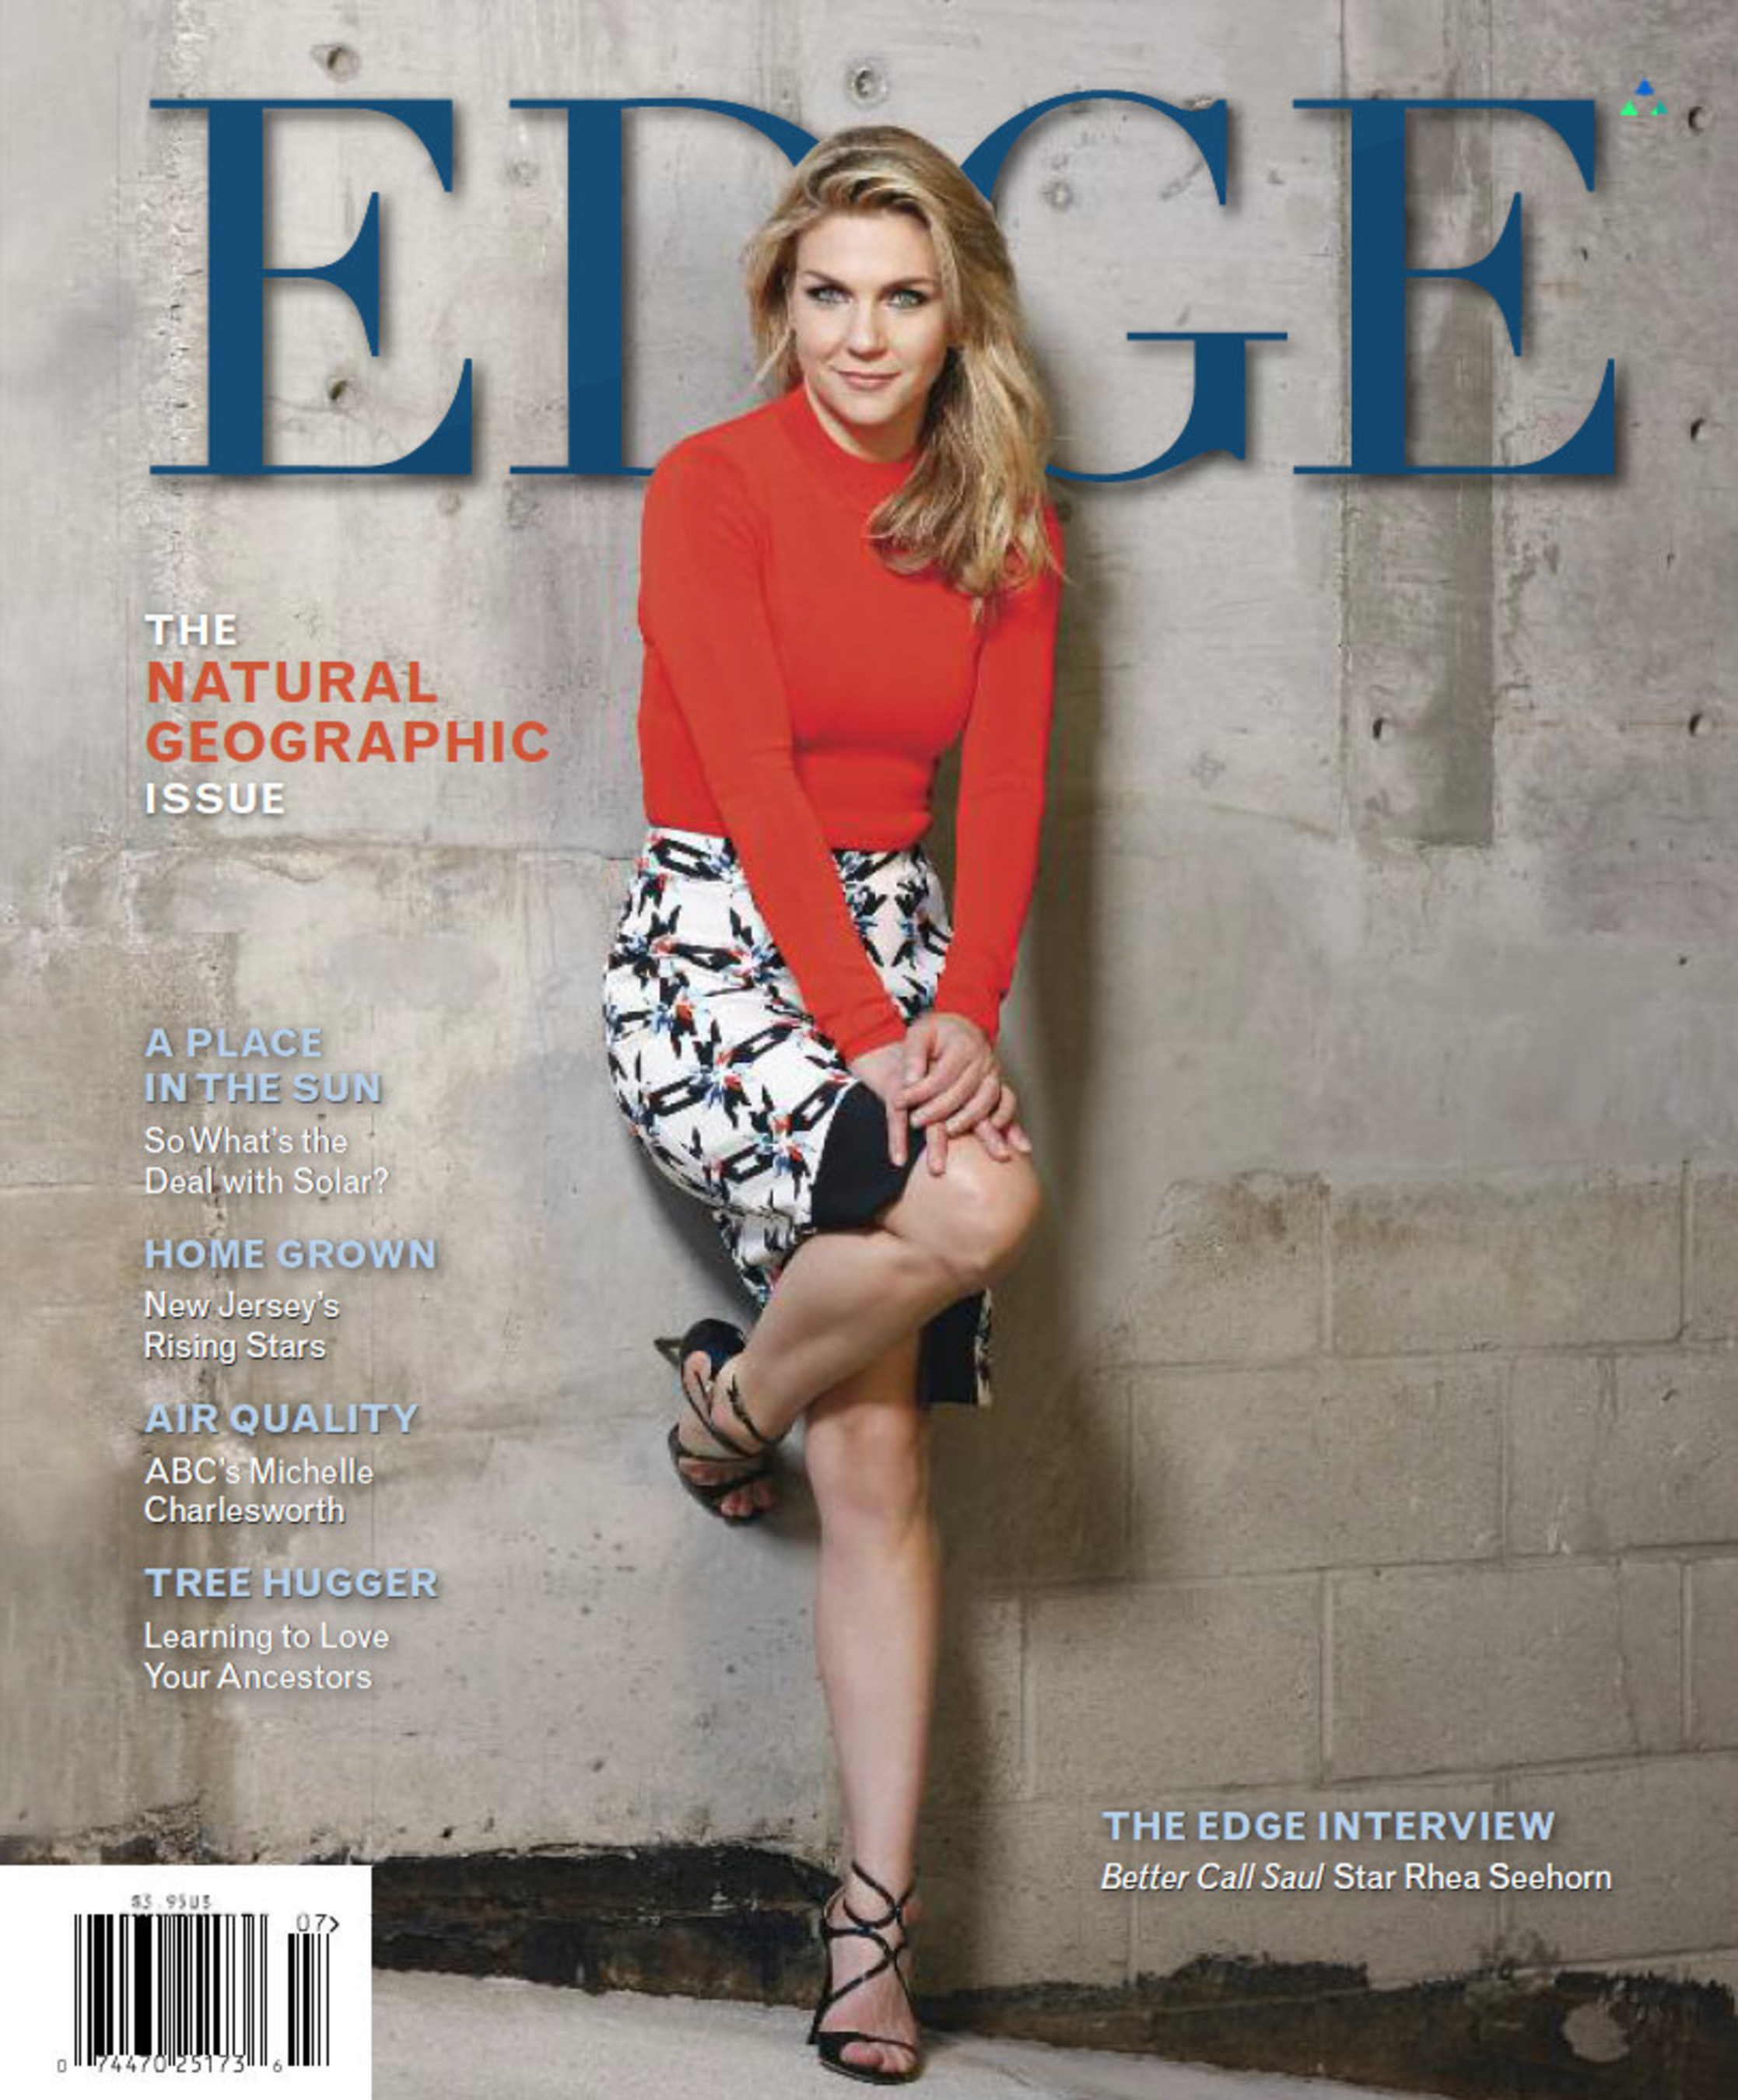 Rhea Seehorn + EDGE Magazine: It's Only Natural - Better Call Saul star talks shop in New Jersey lifestyle magazine's Summer Edition